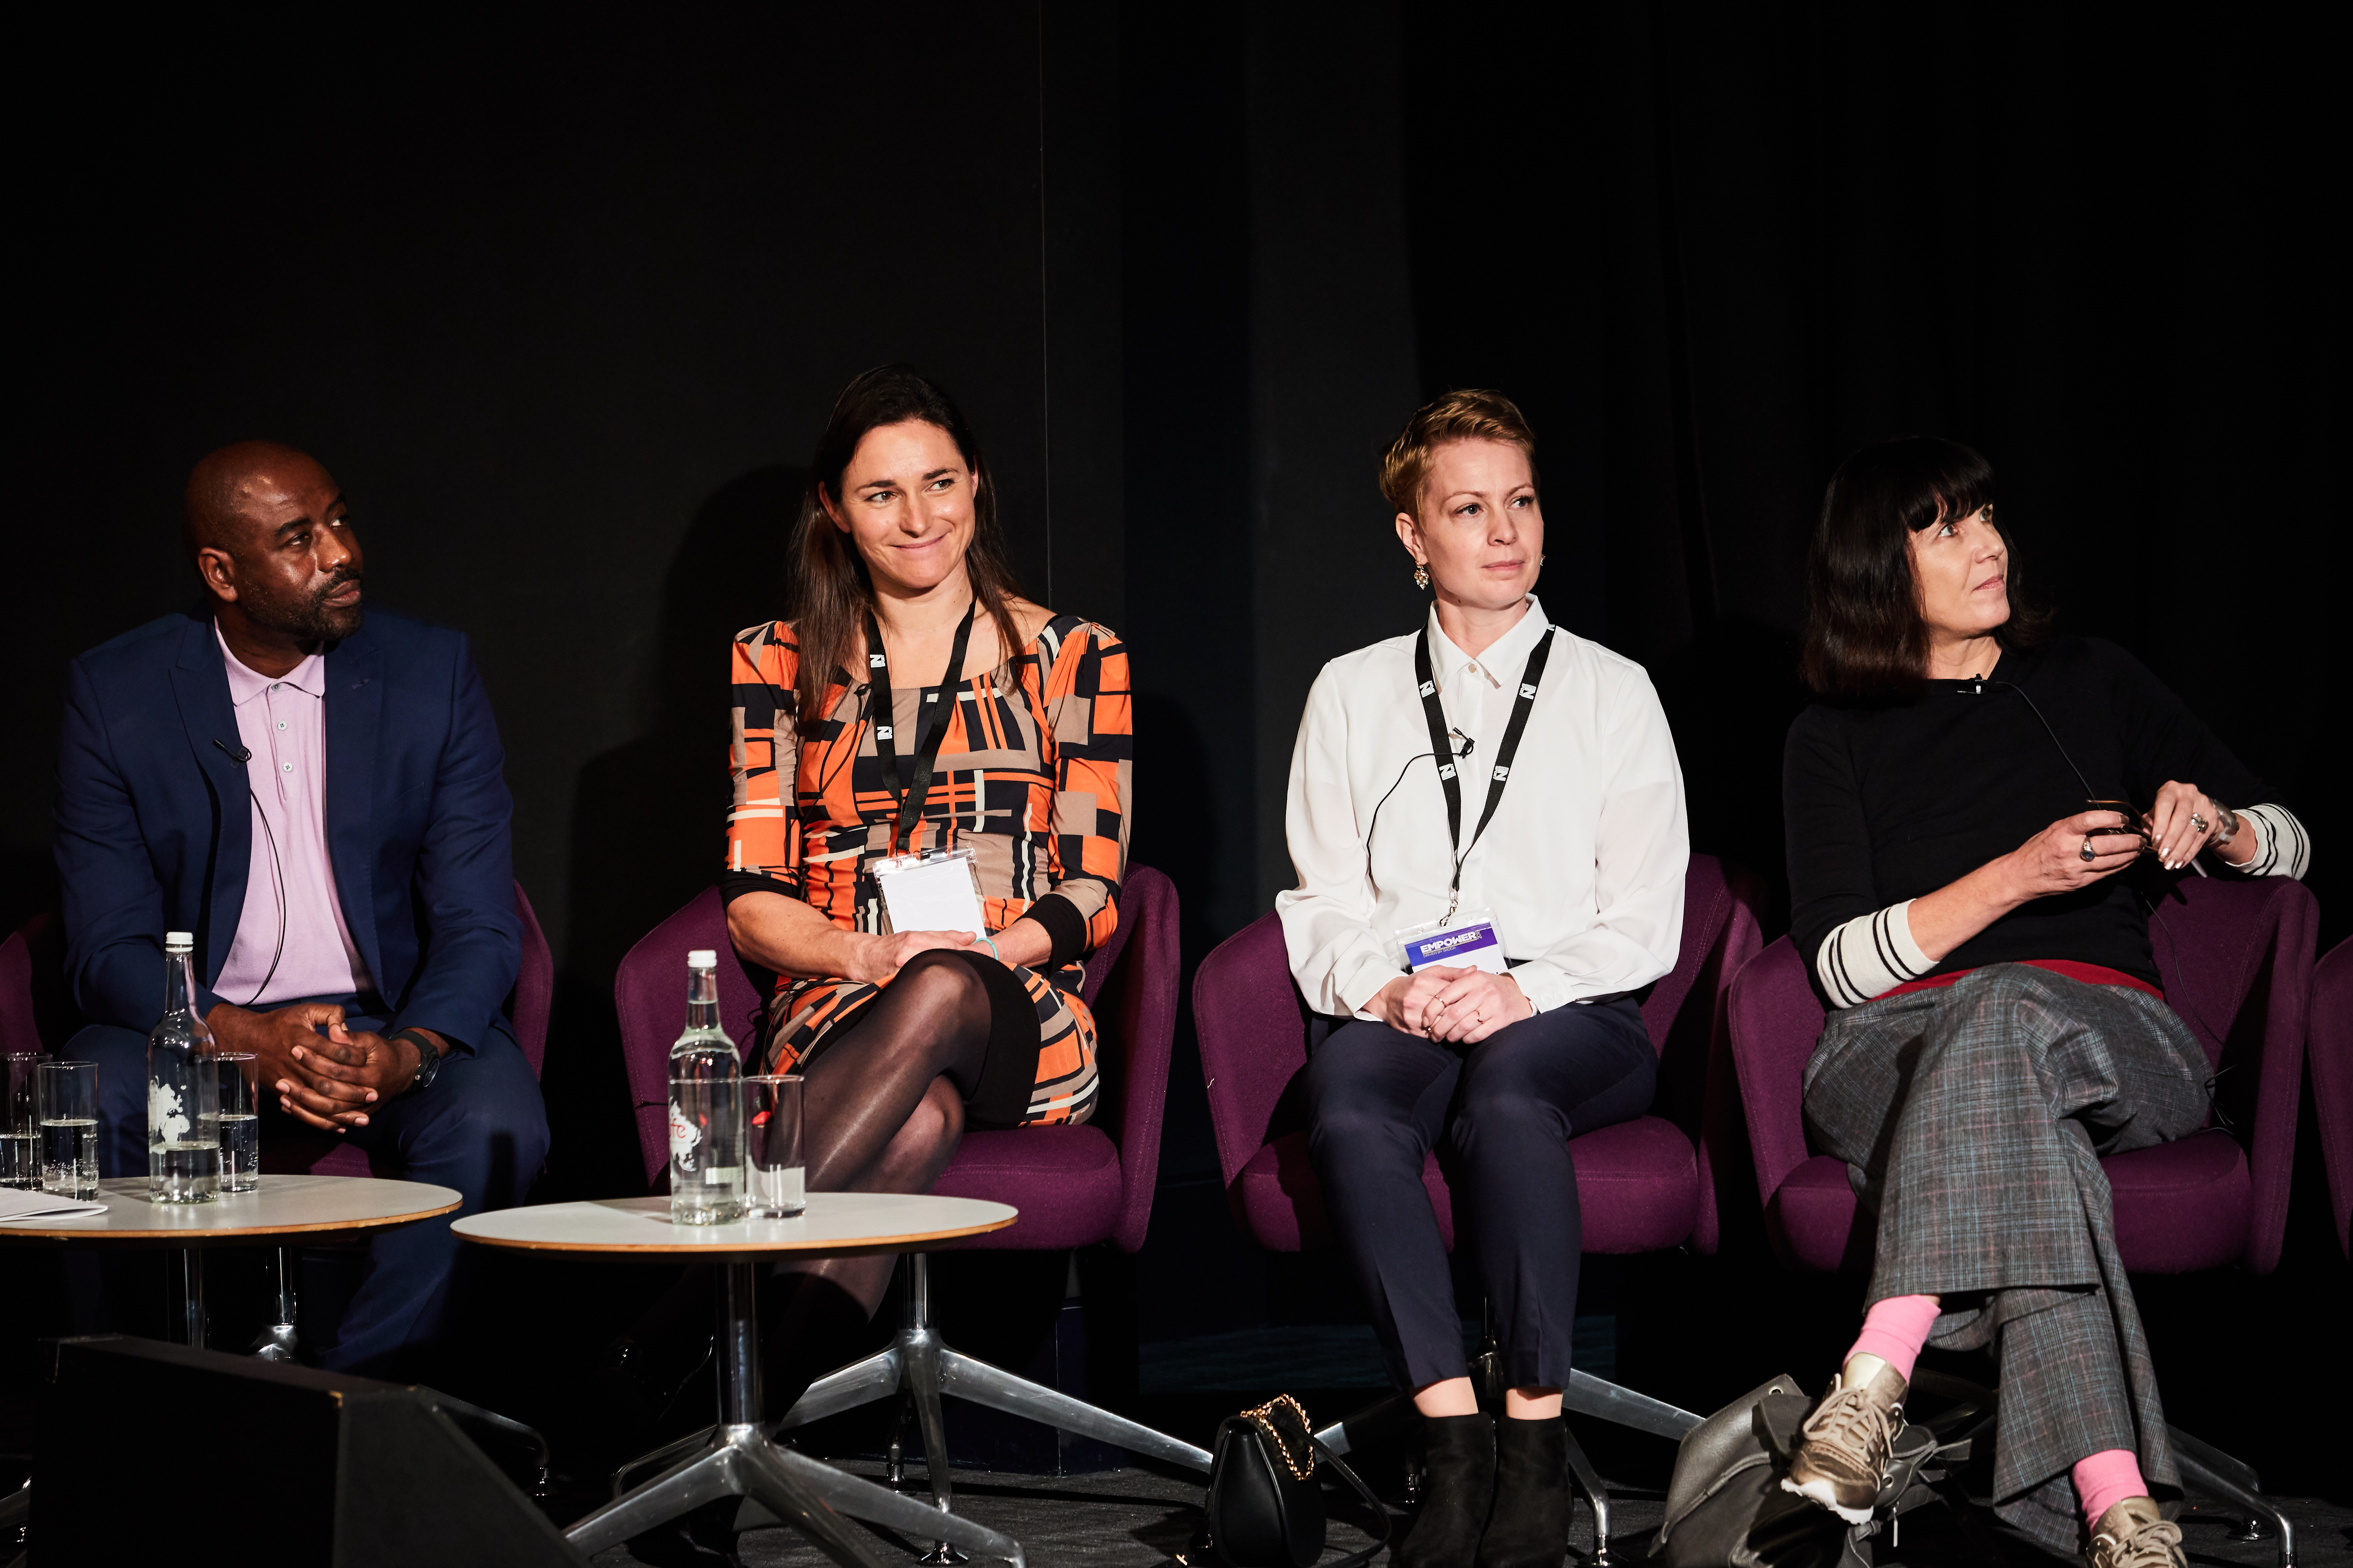 Panellists at the Empower Conference